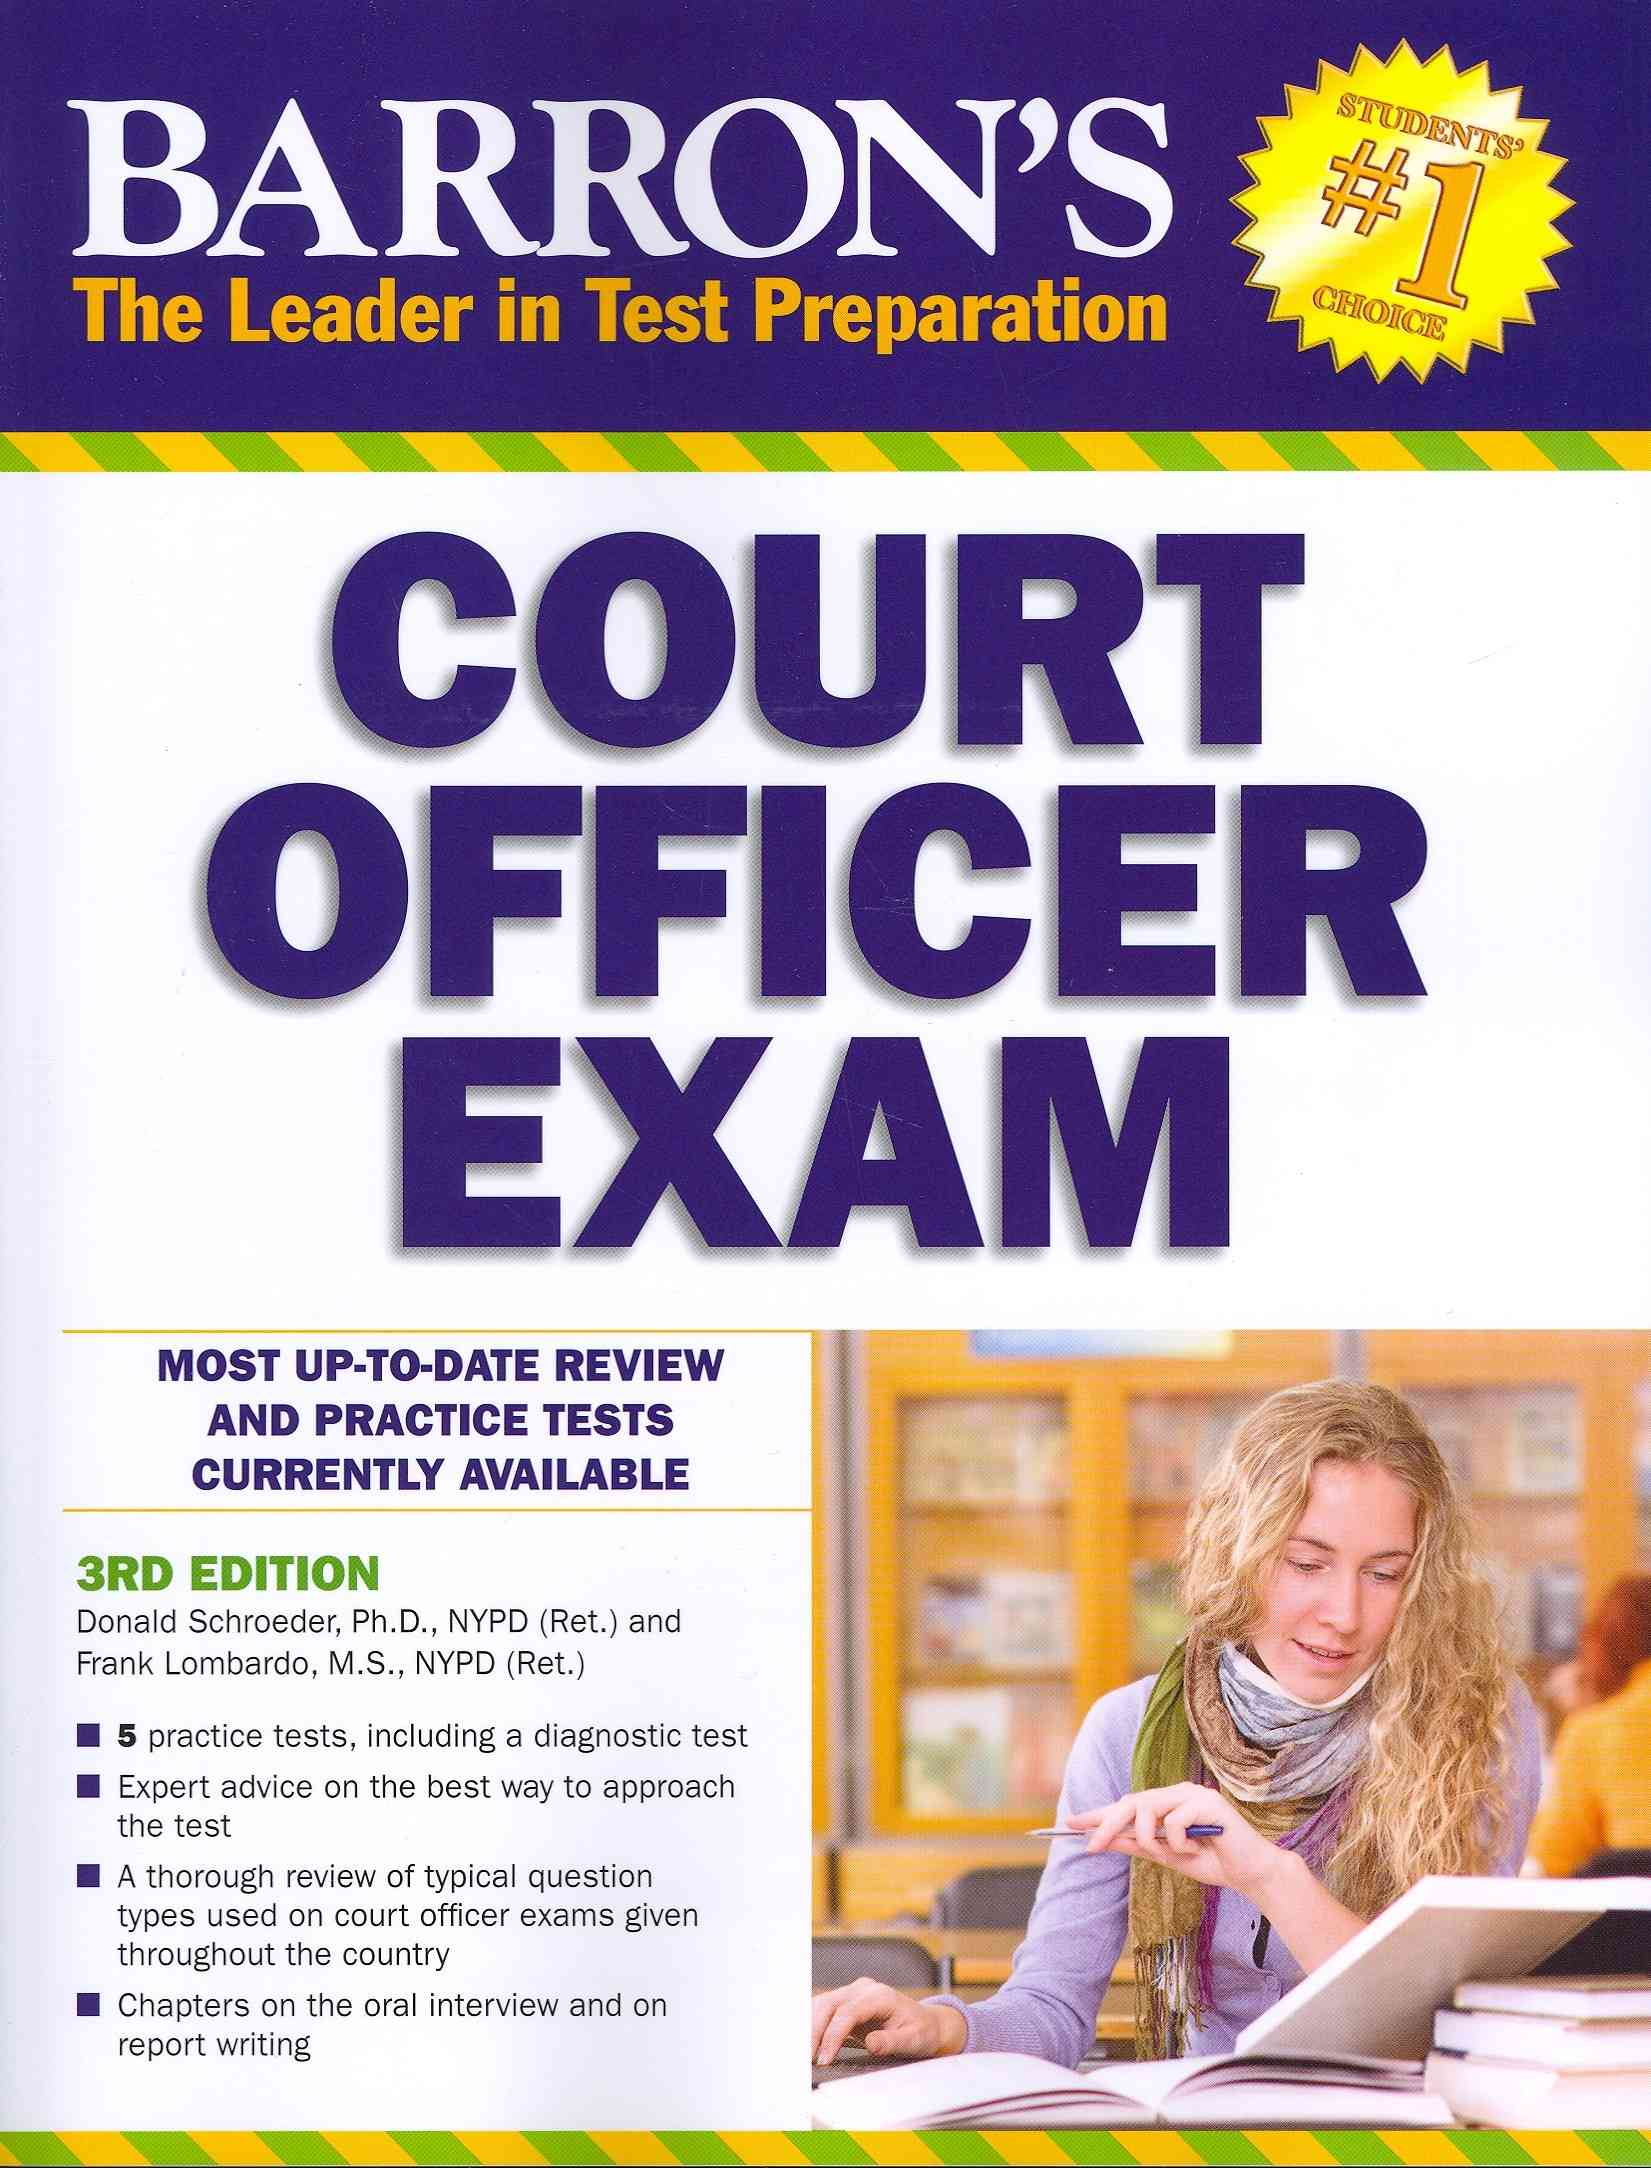 Barron's Court Officer Exam By Schroeder, Donald J., Ph.d./ Lombardo, Frank